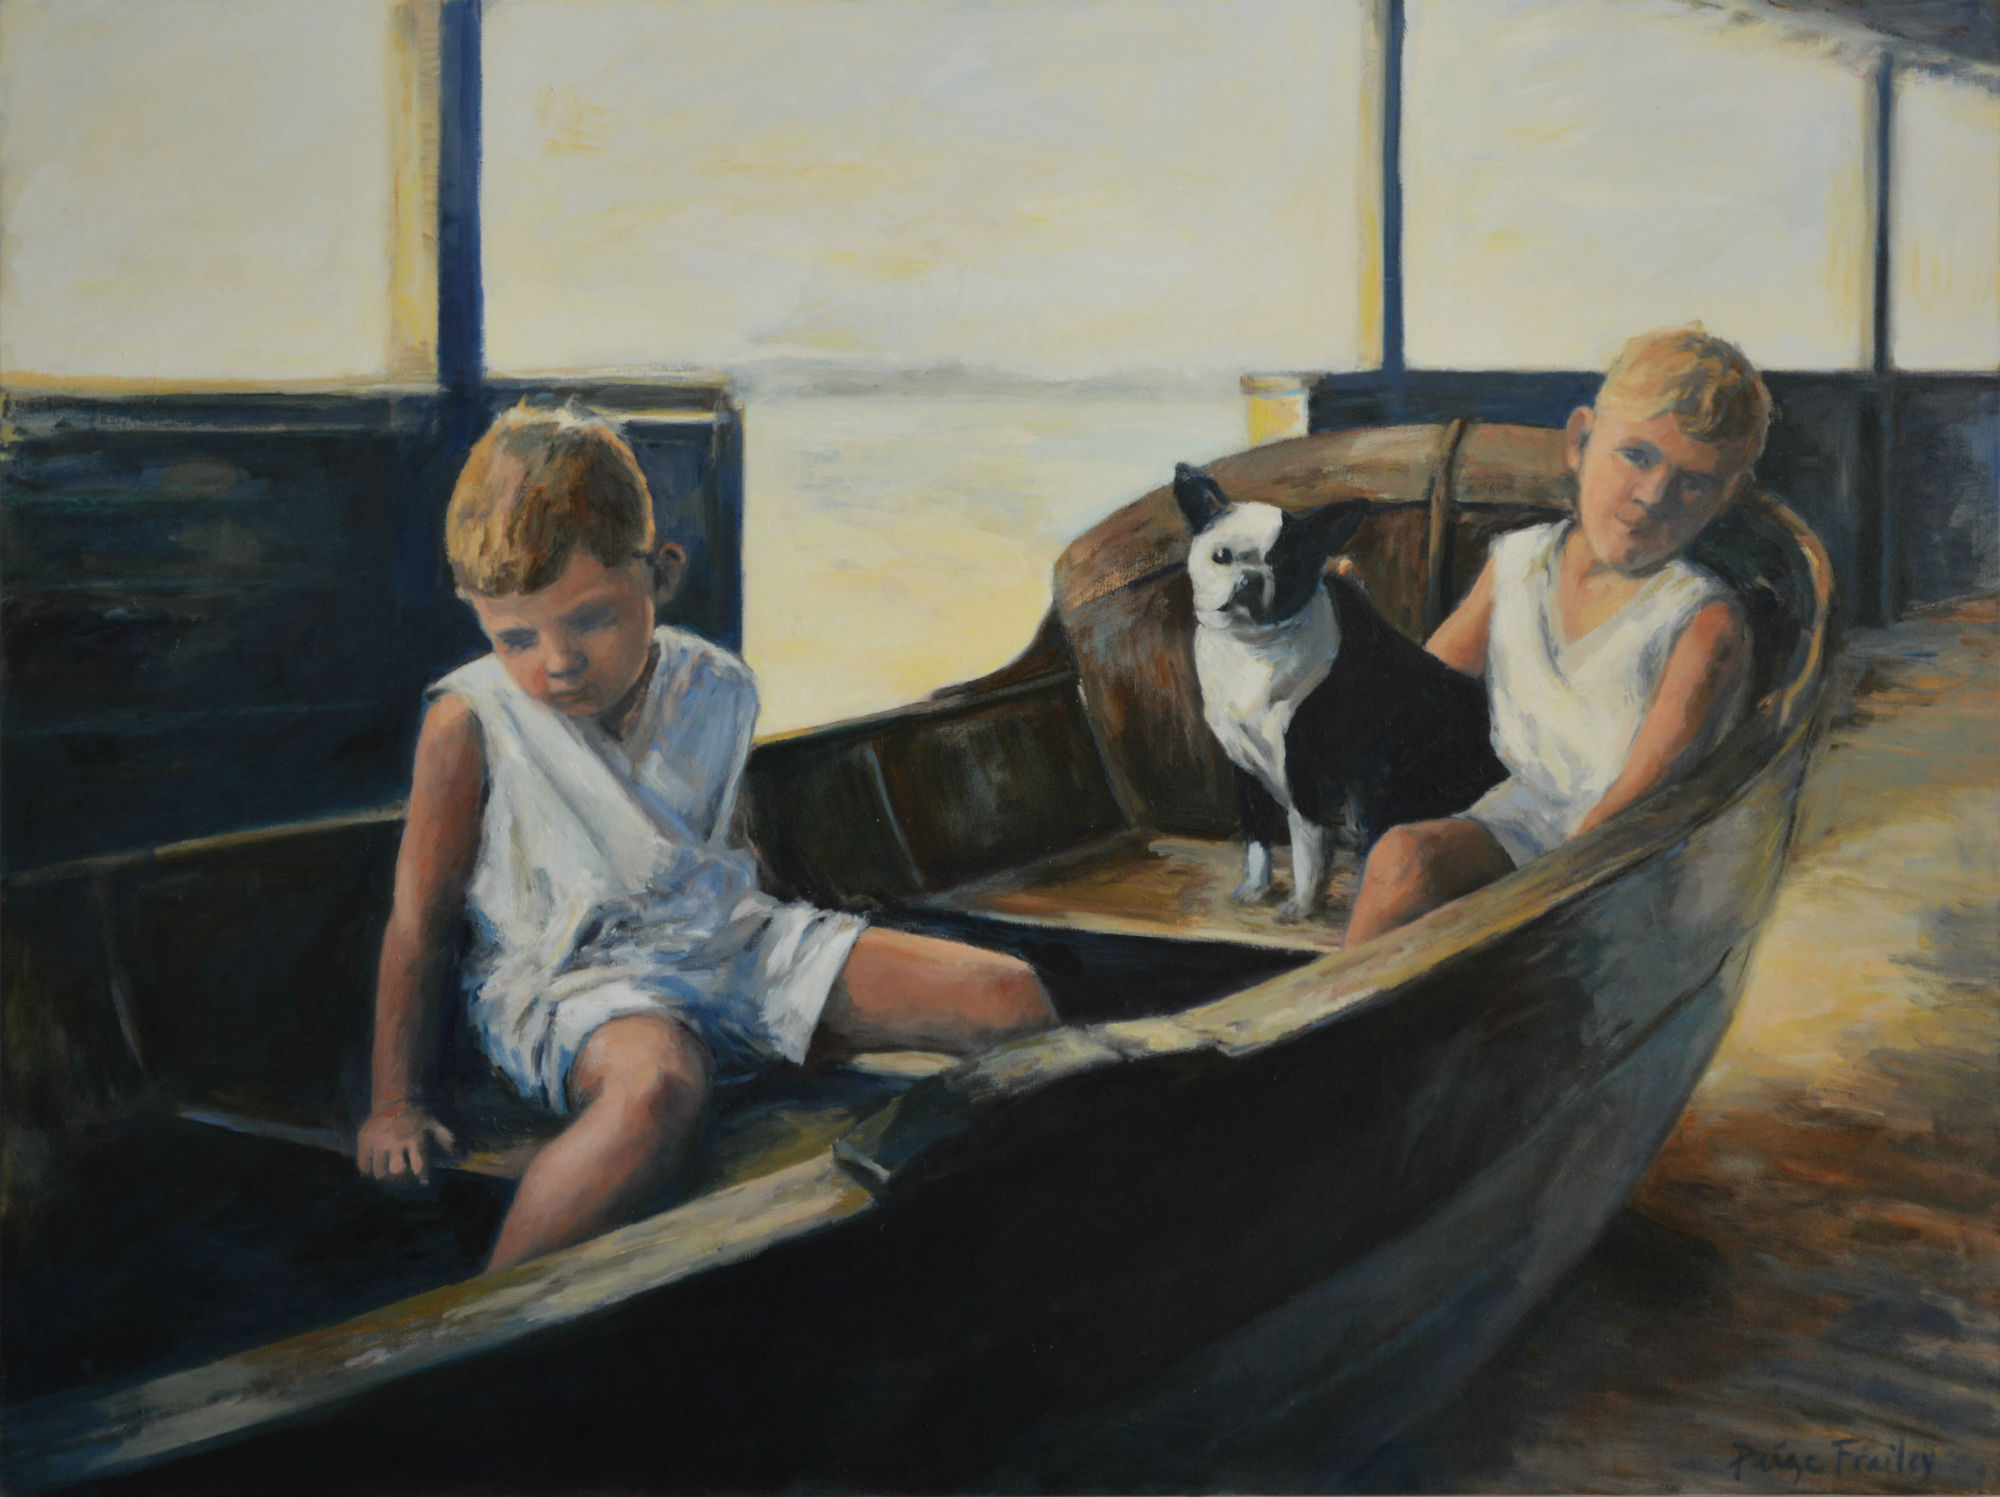 """A family vacation at the beach in New York finds my father-in-law George and his brother LeeRoy exploring an old dinghy. A small 4x6 black and white photo is what I had to work with. To me this painting is primarily a study in light and contrast. 36"""" x 48"""", Oil on Canvas"""